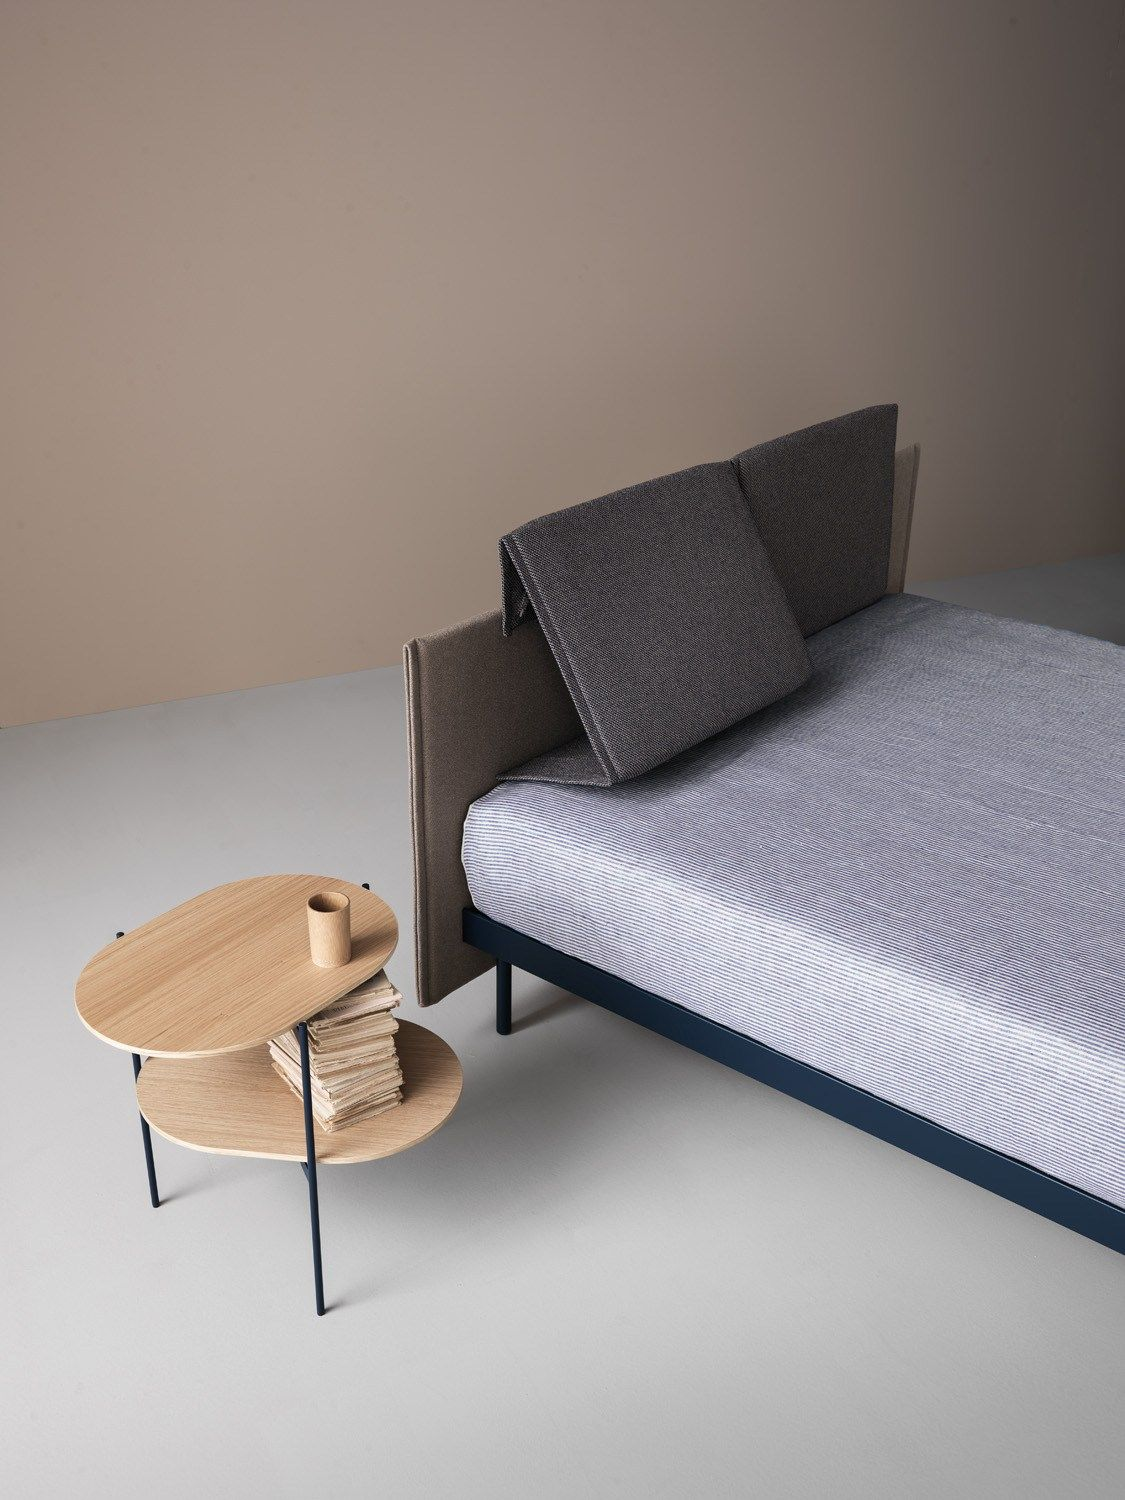 Pli bed by caccaro fabric double bed with adjustable for Bed headrest design